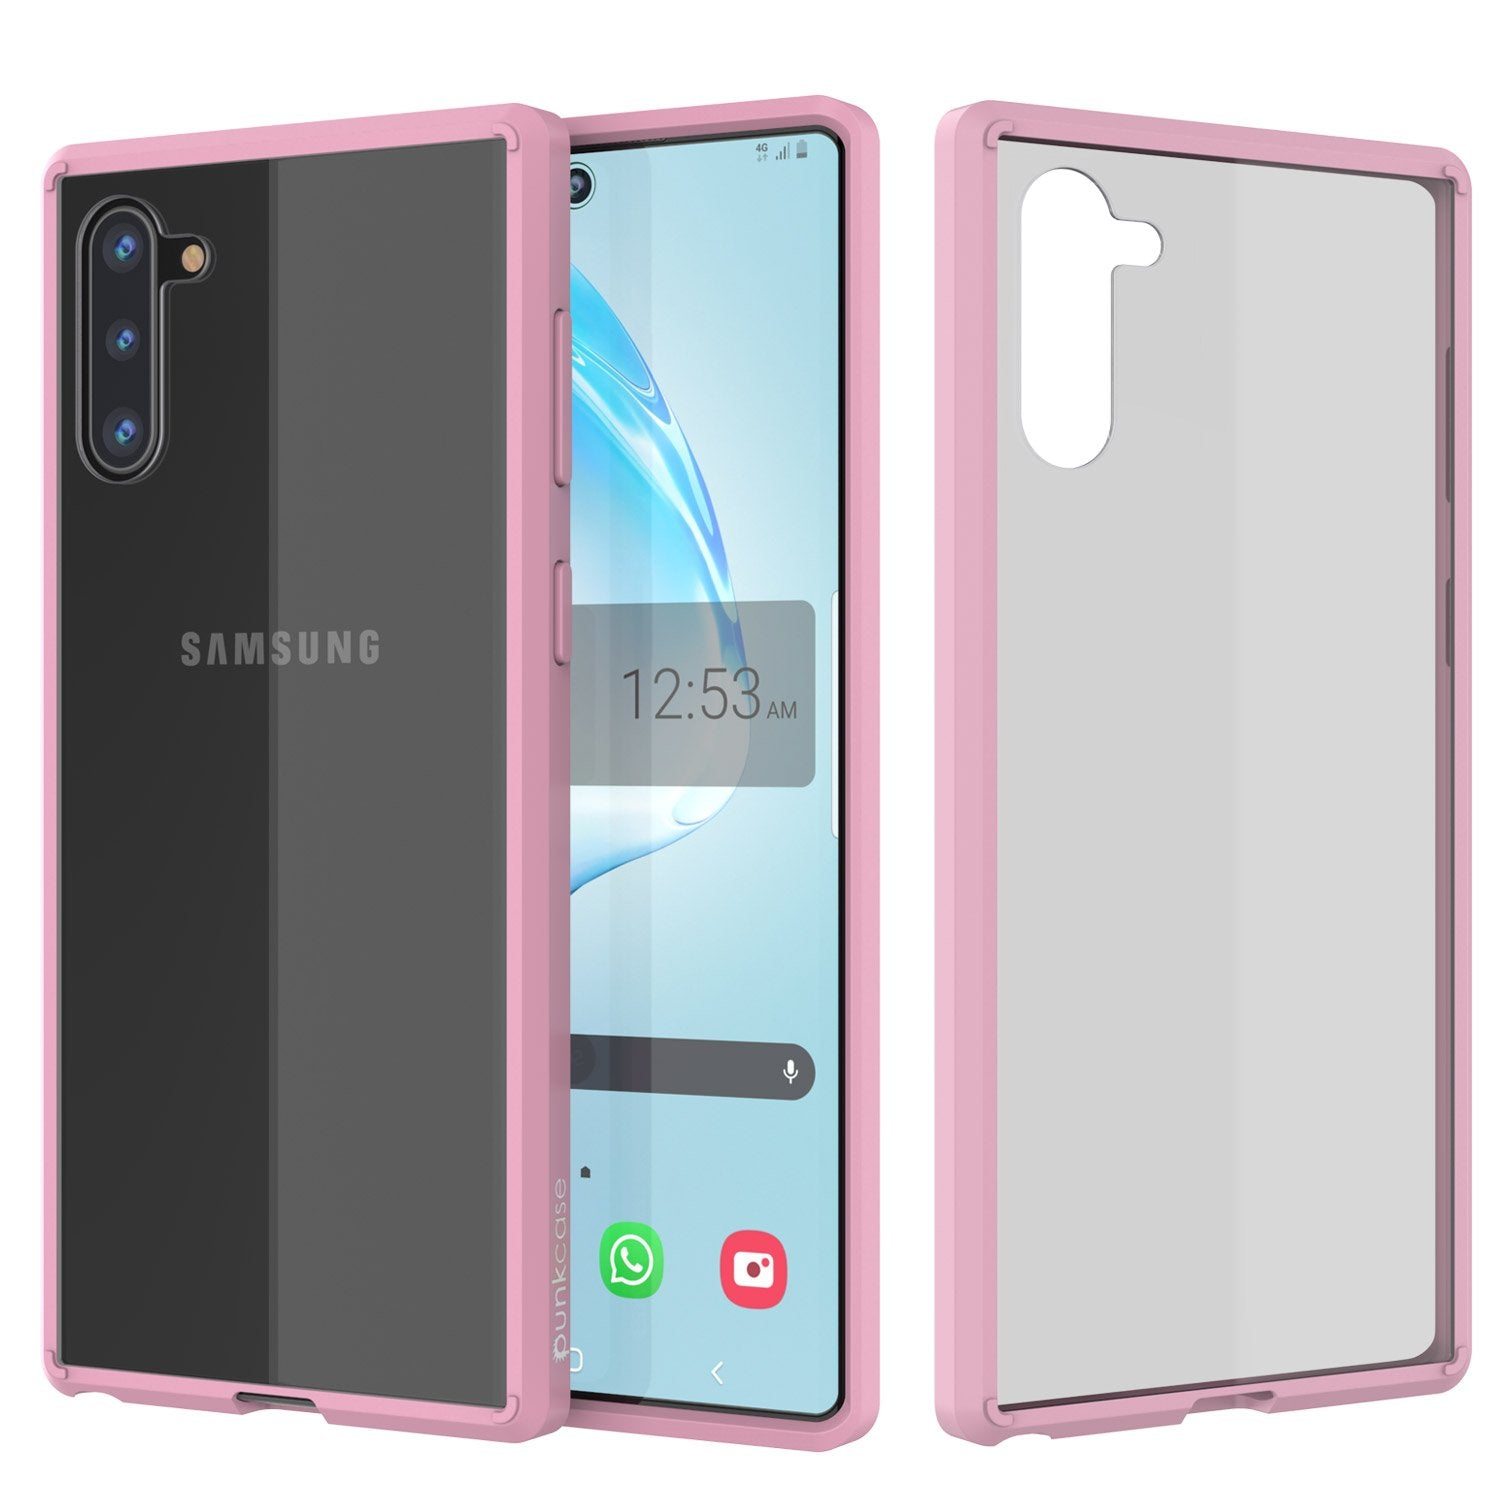 Galaxy Note 20 Punkcase Lucid-2.0 Series Slim Fit Armor Crystal Pink Case Cover